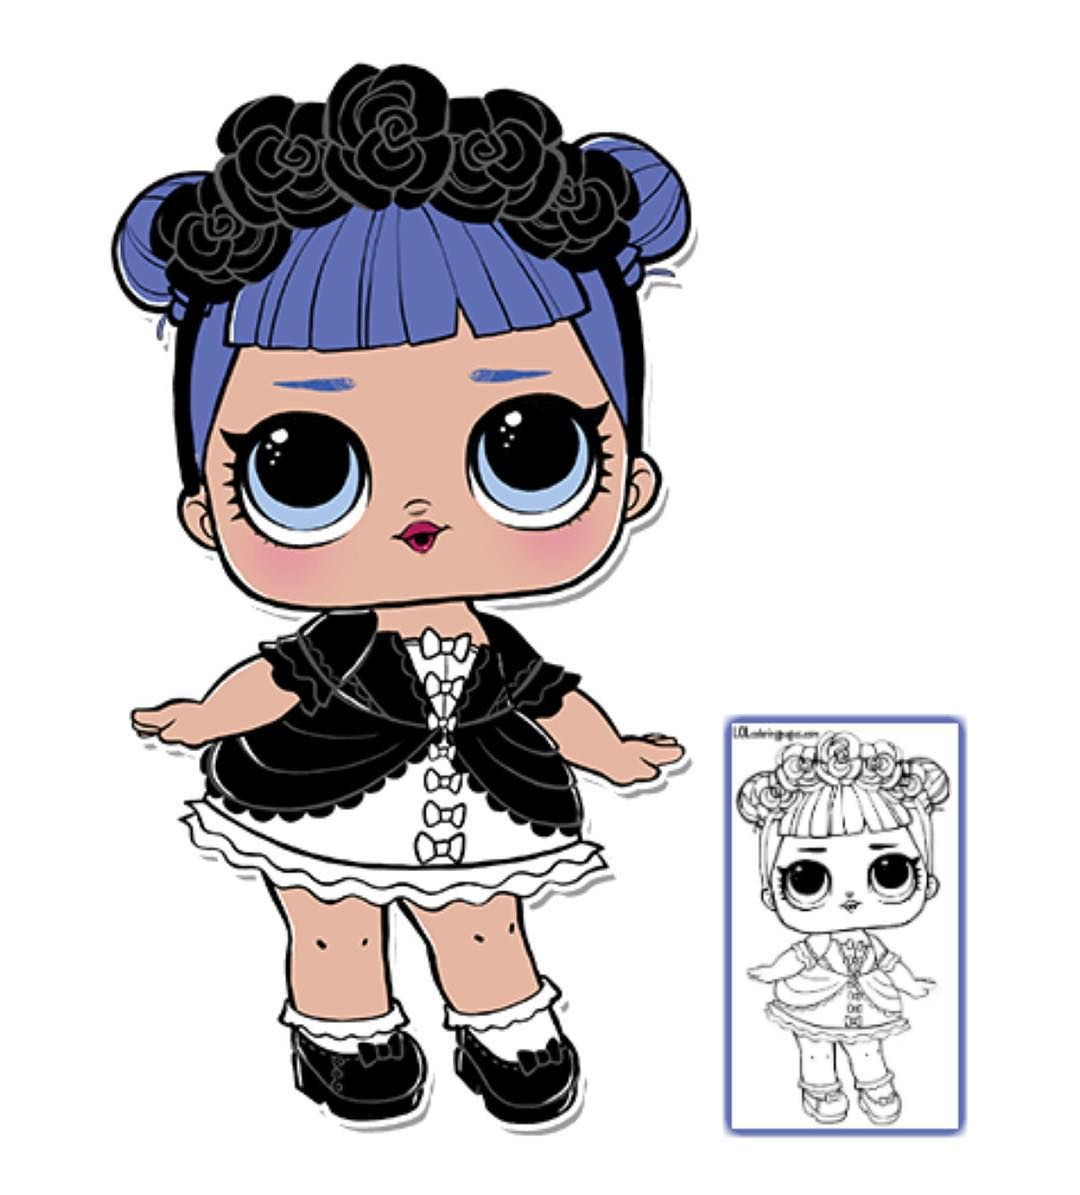 Visit Lolcoloringpages Com Where You Can Print And Color Your L Lol Surprise Dolls Like Midnight And Many More For Lol Dolls Big Eyes Doll Cool Coloring Pages